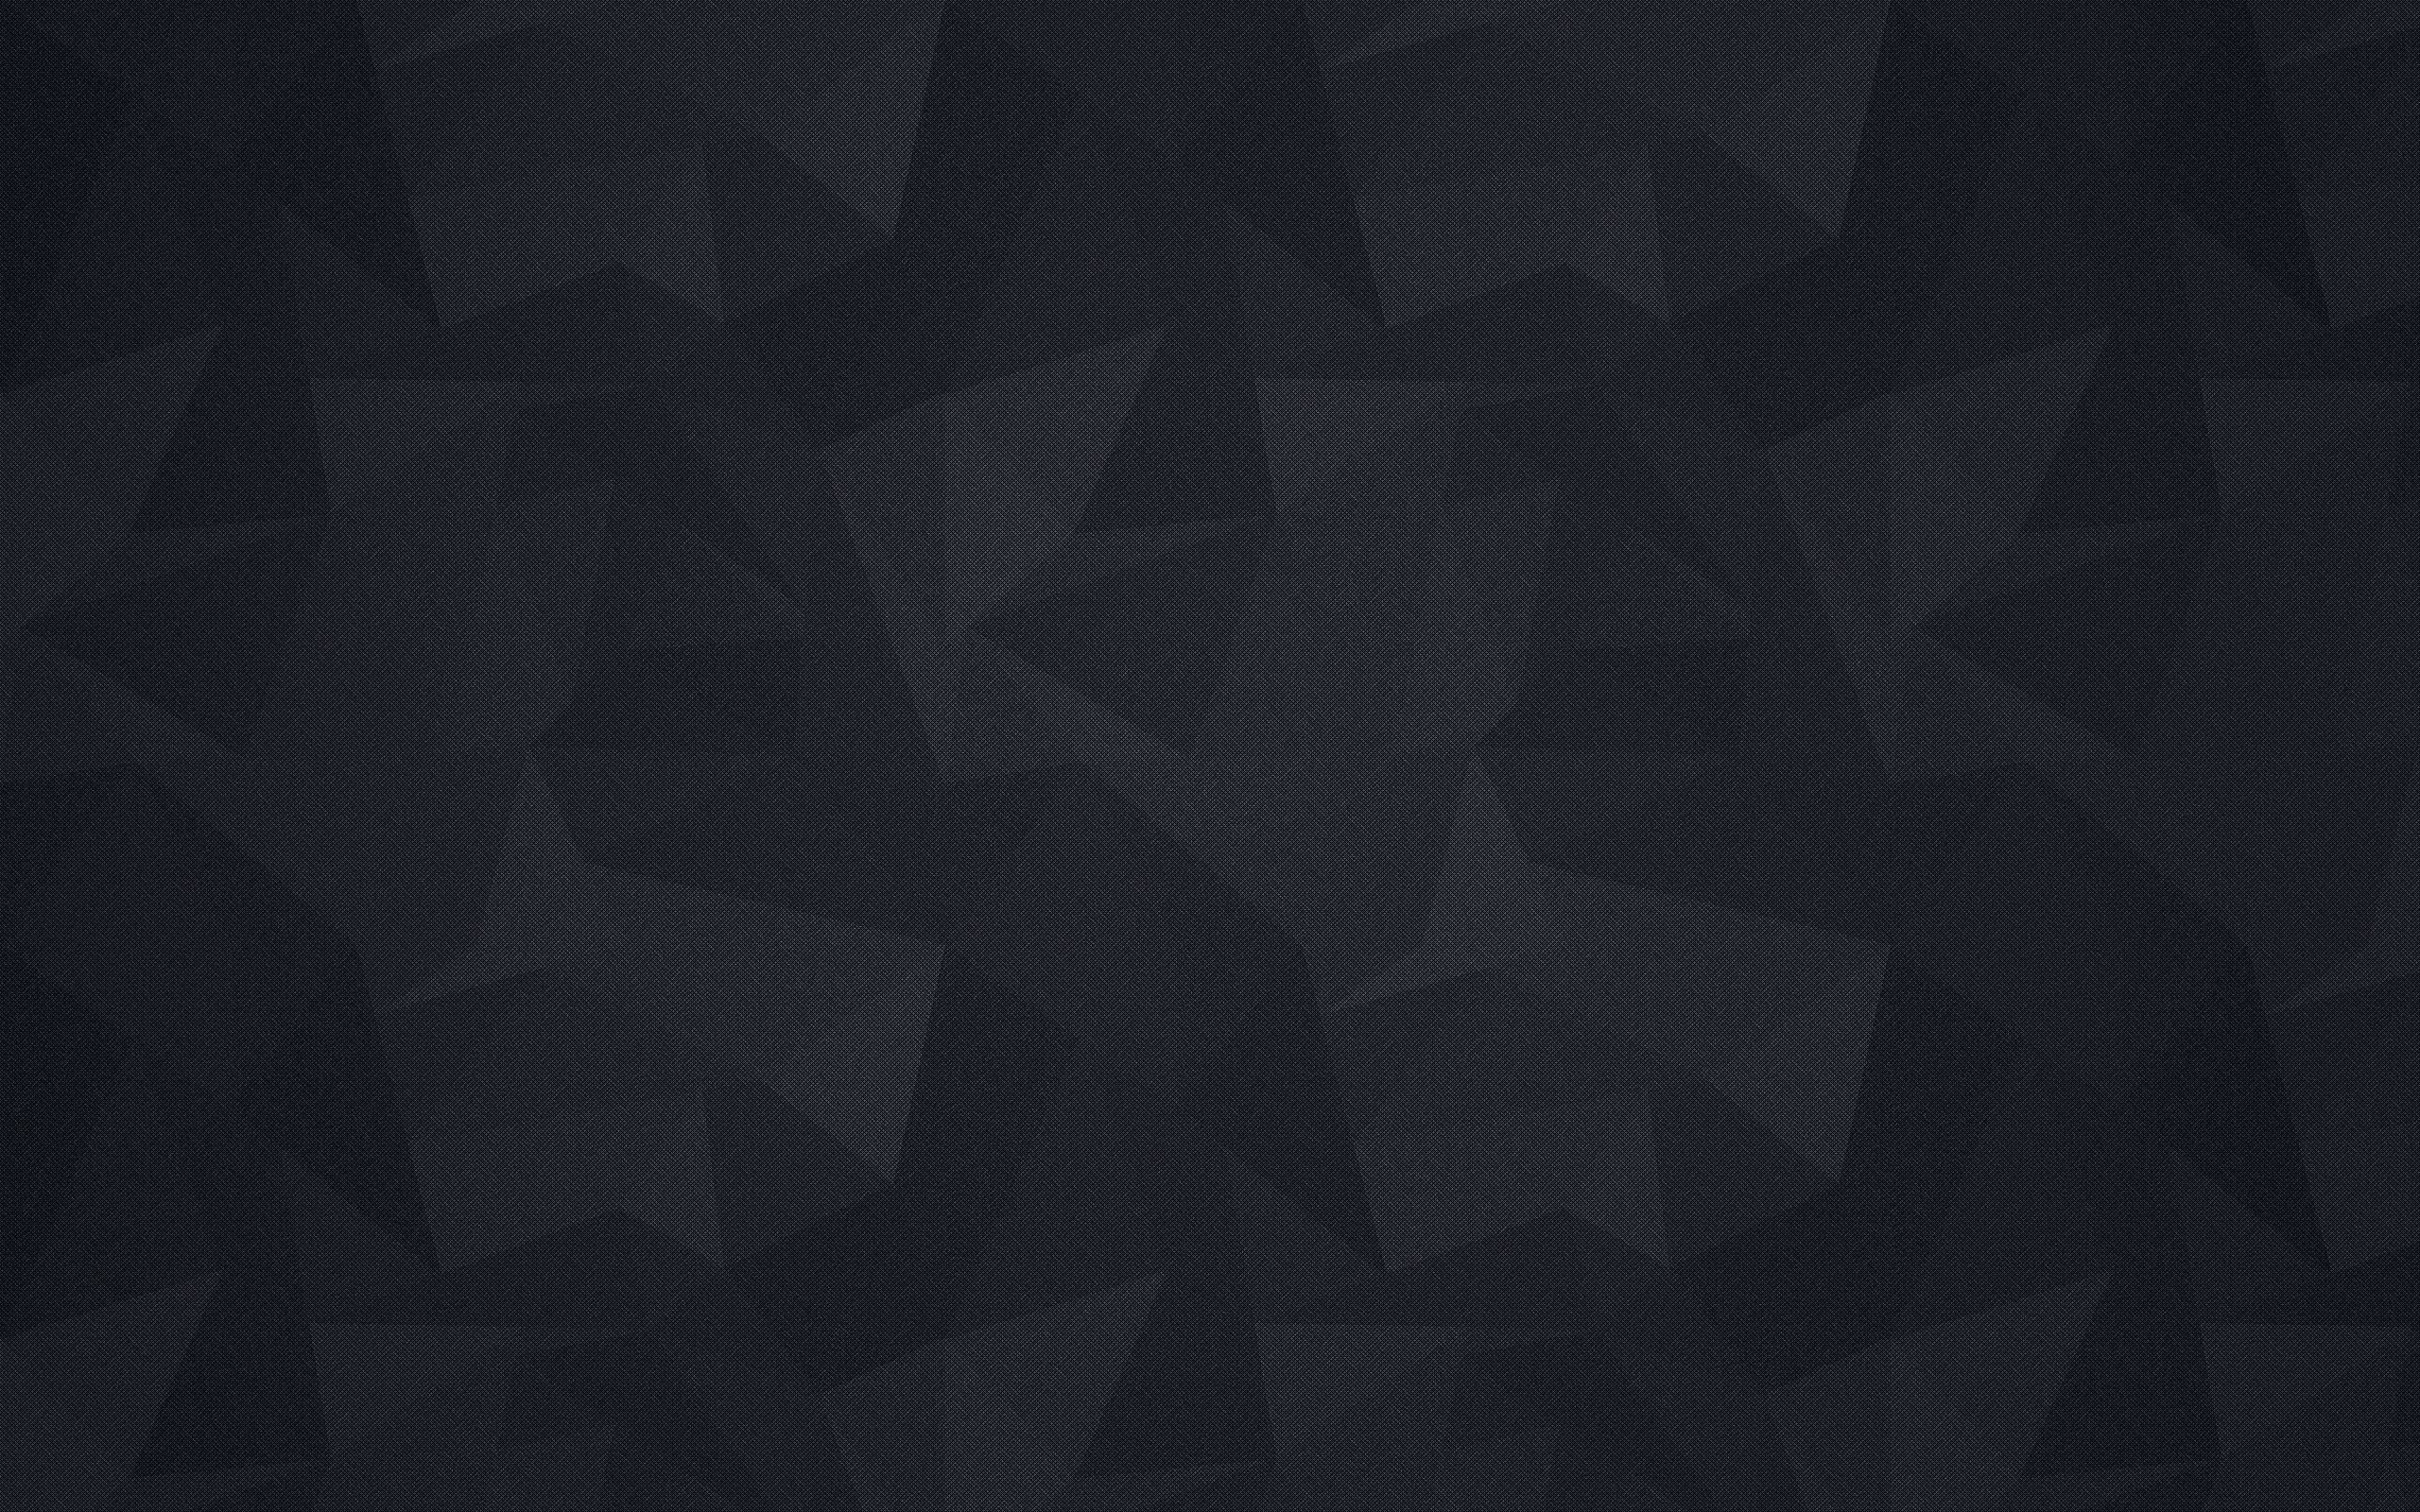 Flat Black Wallpapers 2560x1600